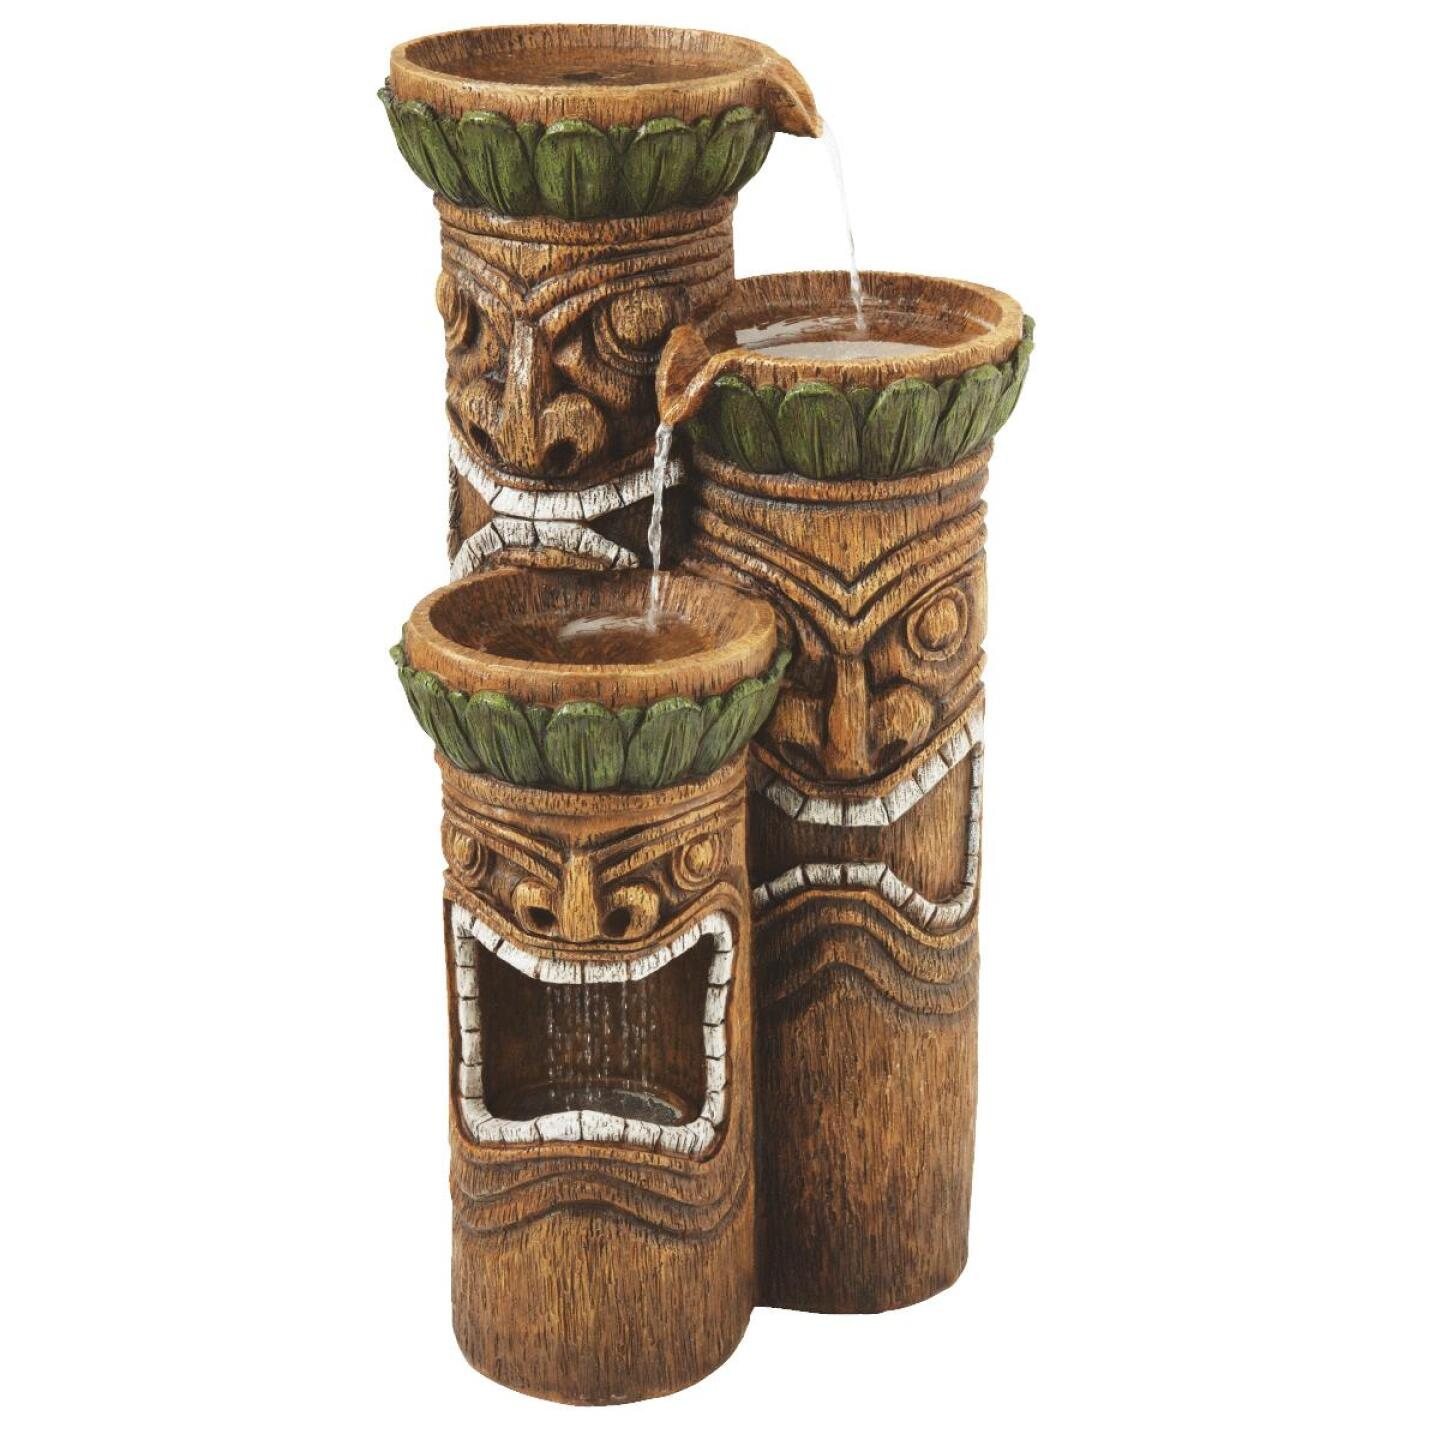 Best Garden 16 In. W. x 32 In. H. x 16 In. L. Resin Tiki Head Fountain Image 1